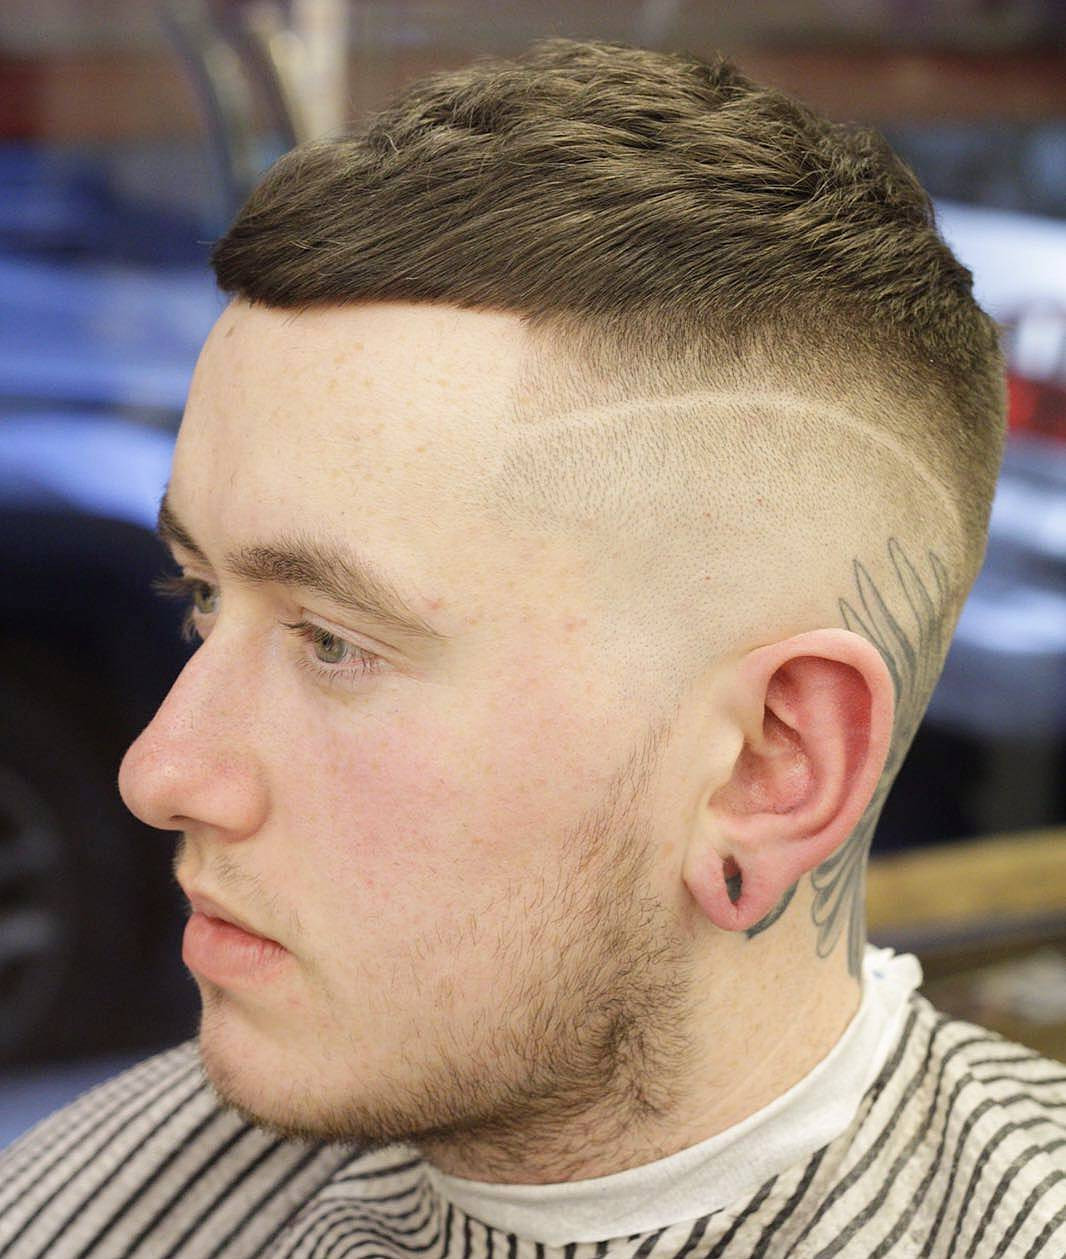 Cool Short Haircuts For Boys  20 Very Short Haircuts for Men